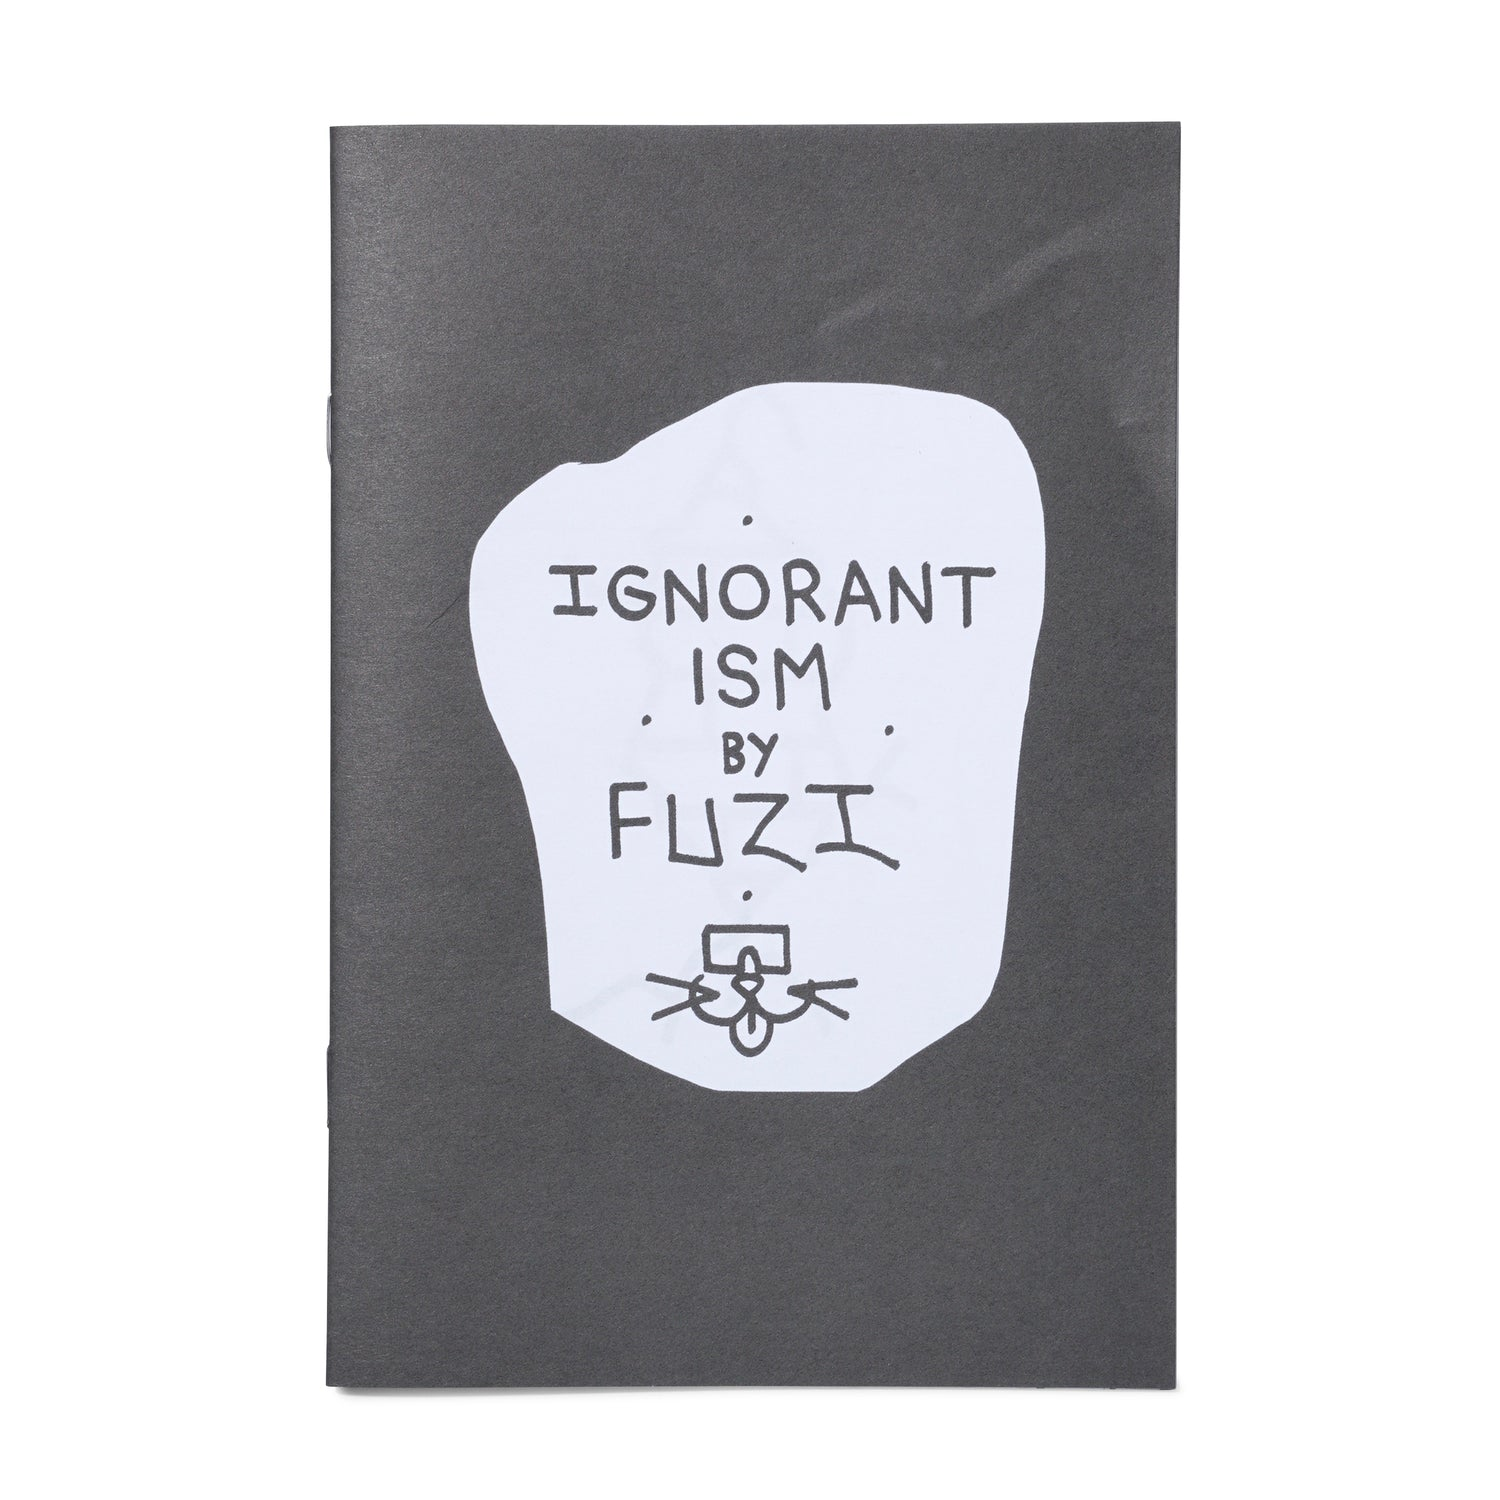 FUZI - 'Ignorantism' Zine